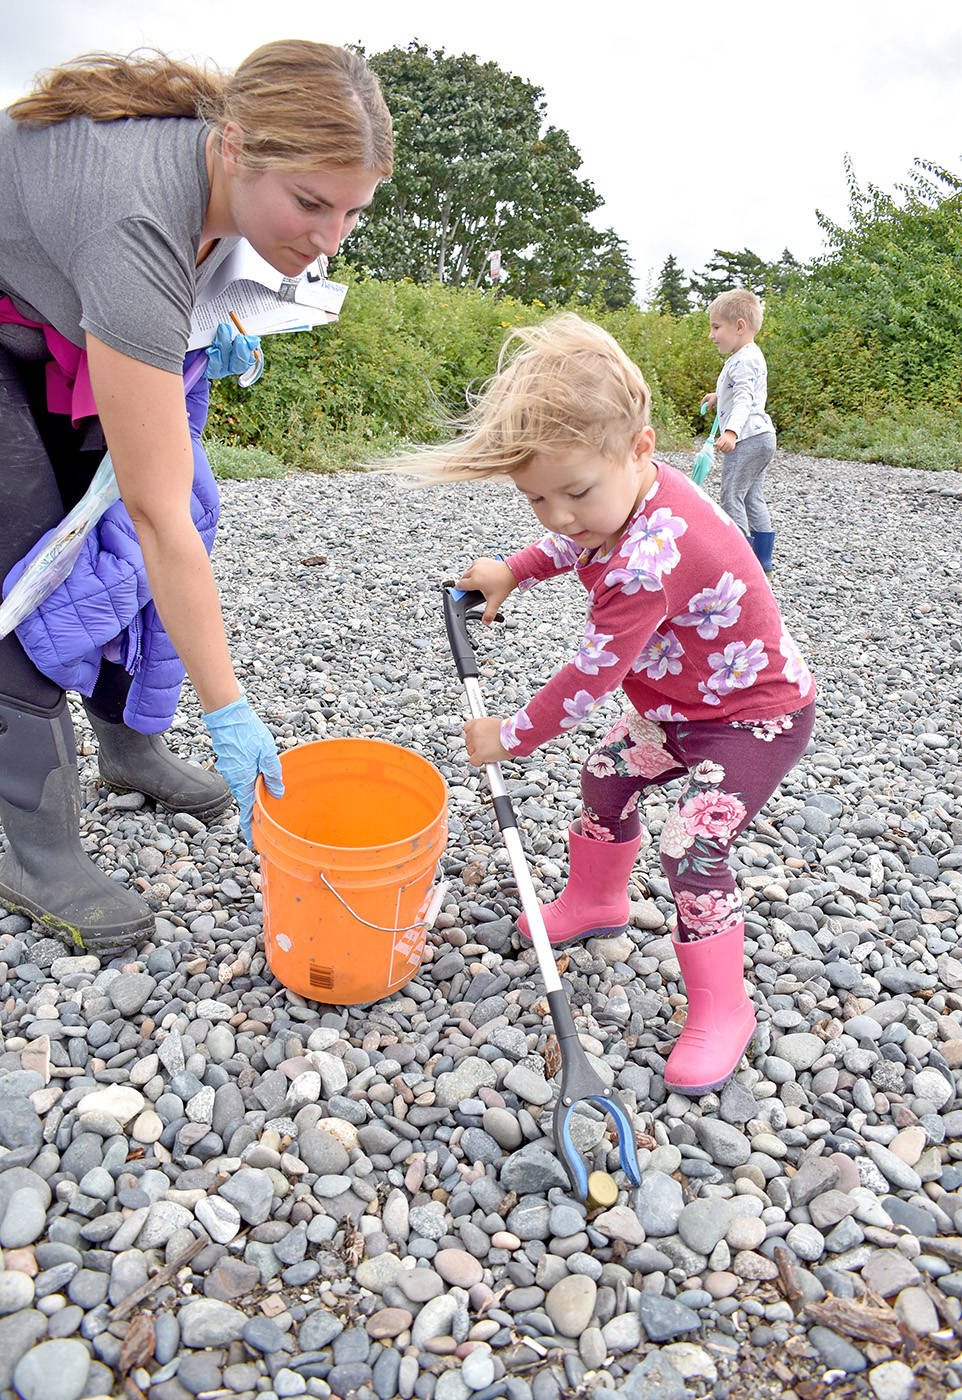 Leanna Wurz, 3, picks up a bottle cap during an Aug. 20 Great Canadian Shoreline Cleanup effort organized by her mom, Rachel. (Tracy Holmes photo)